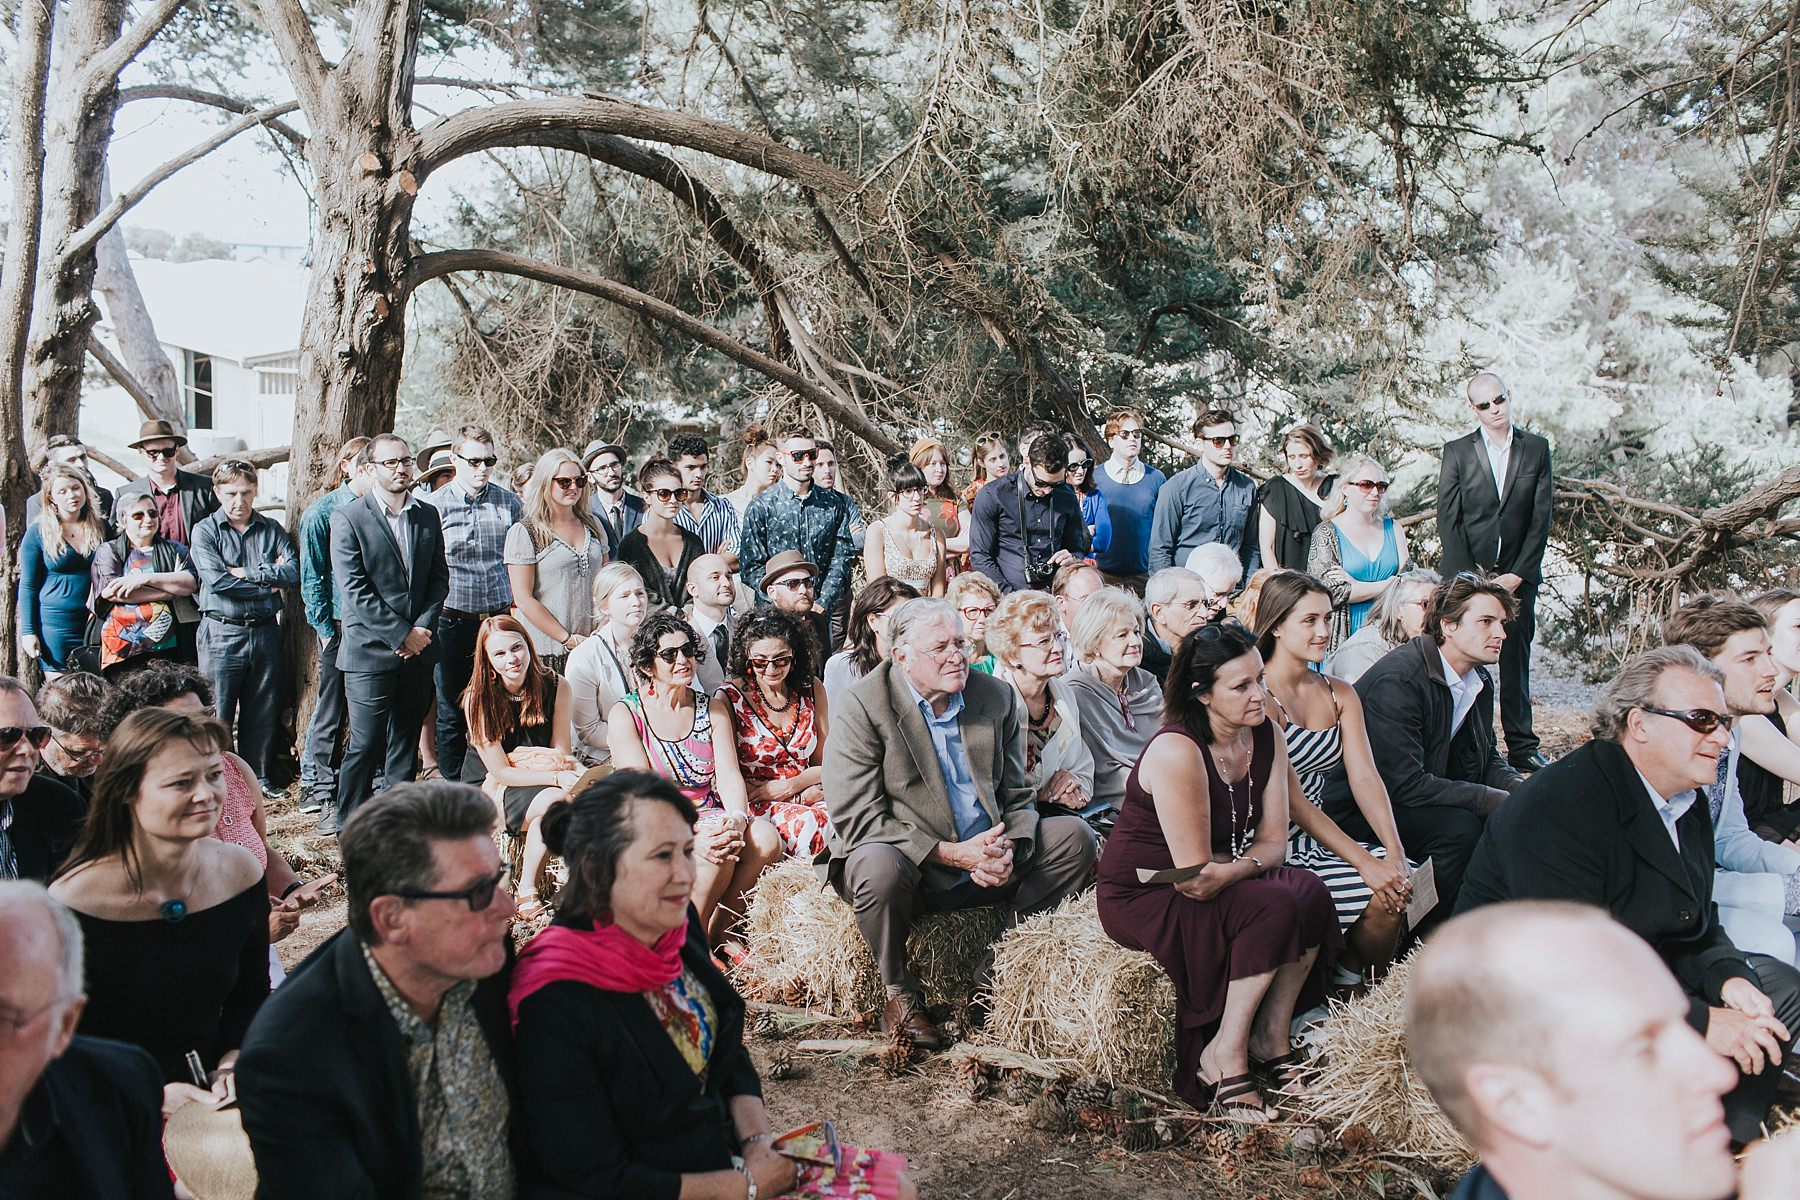 guests seated at a farm wedding